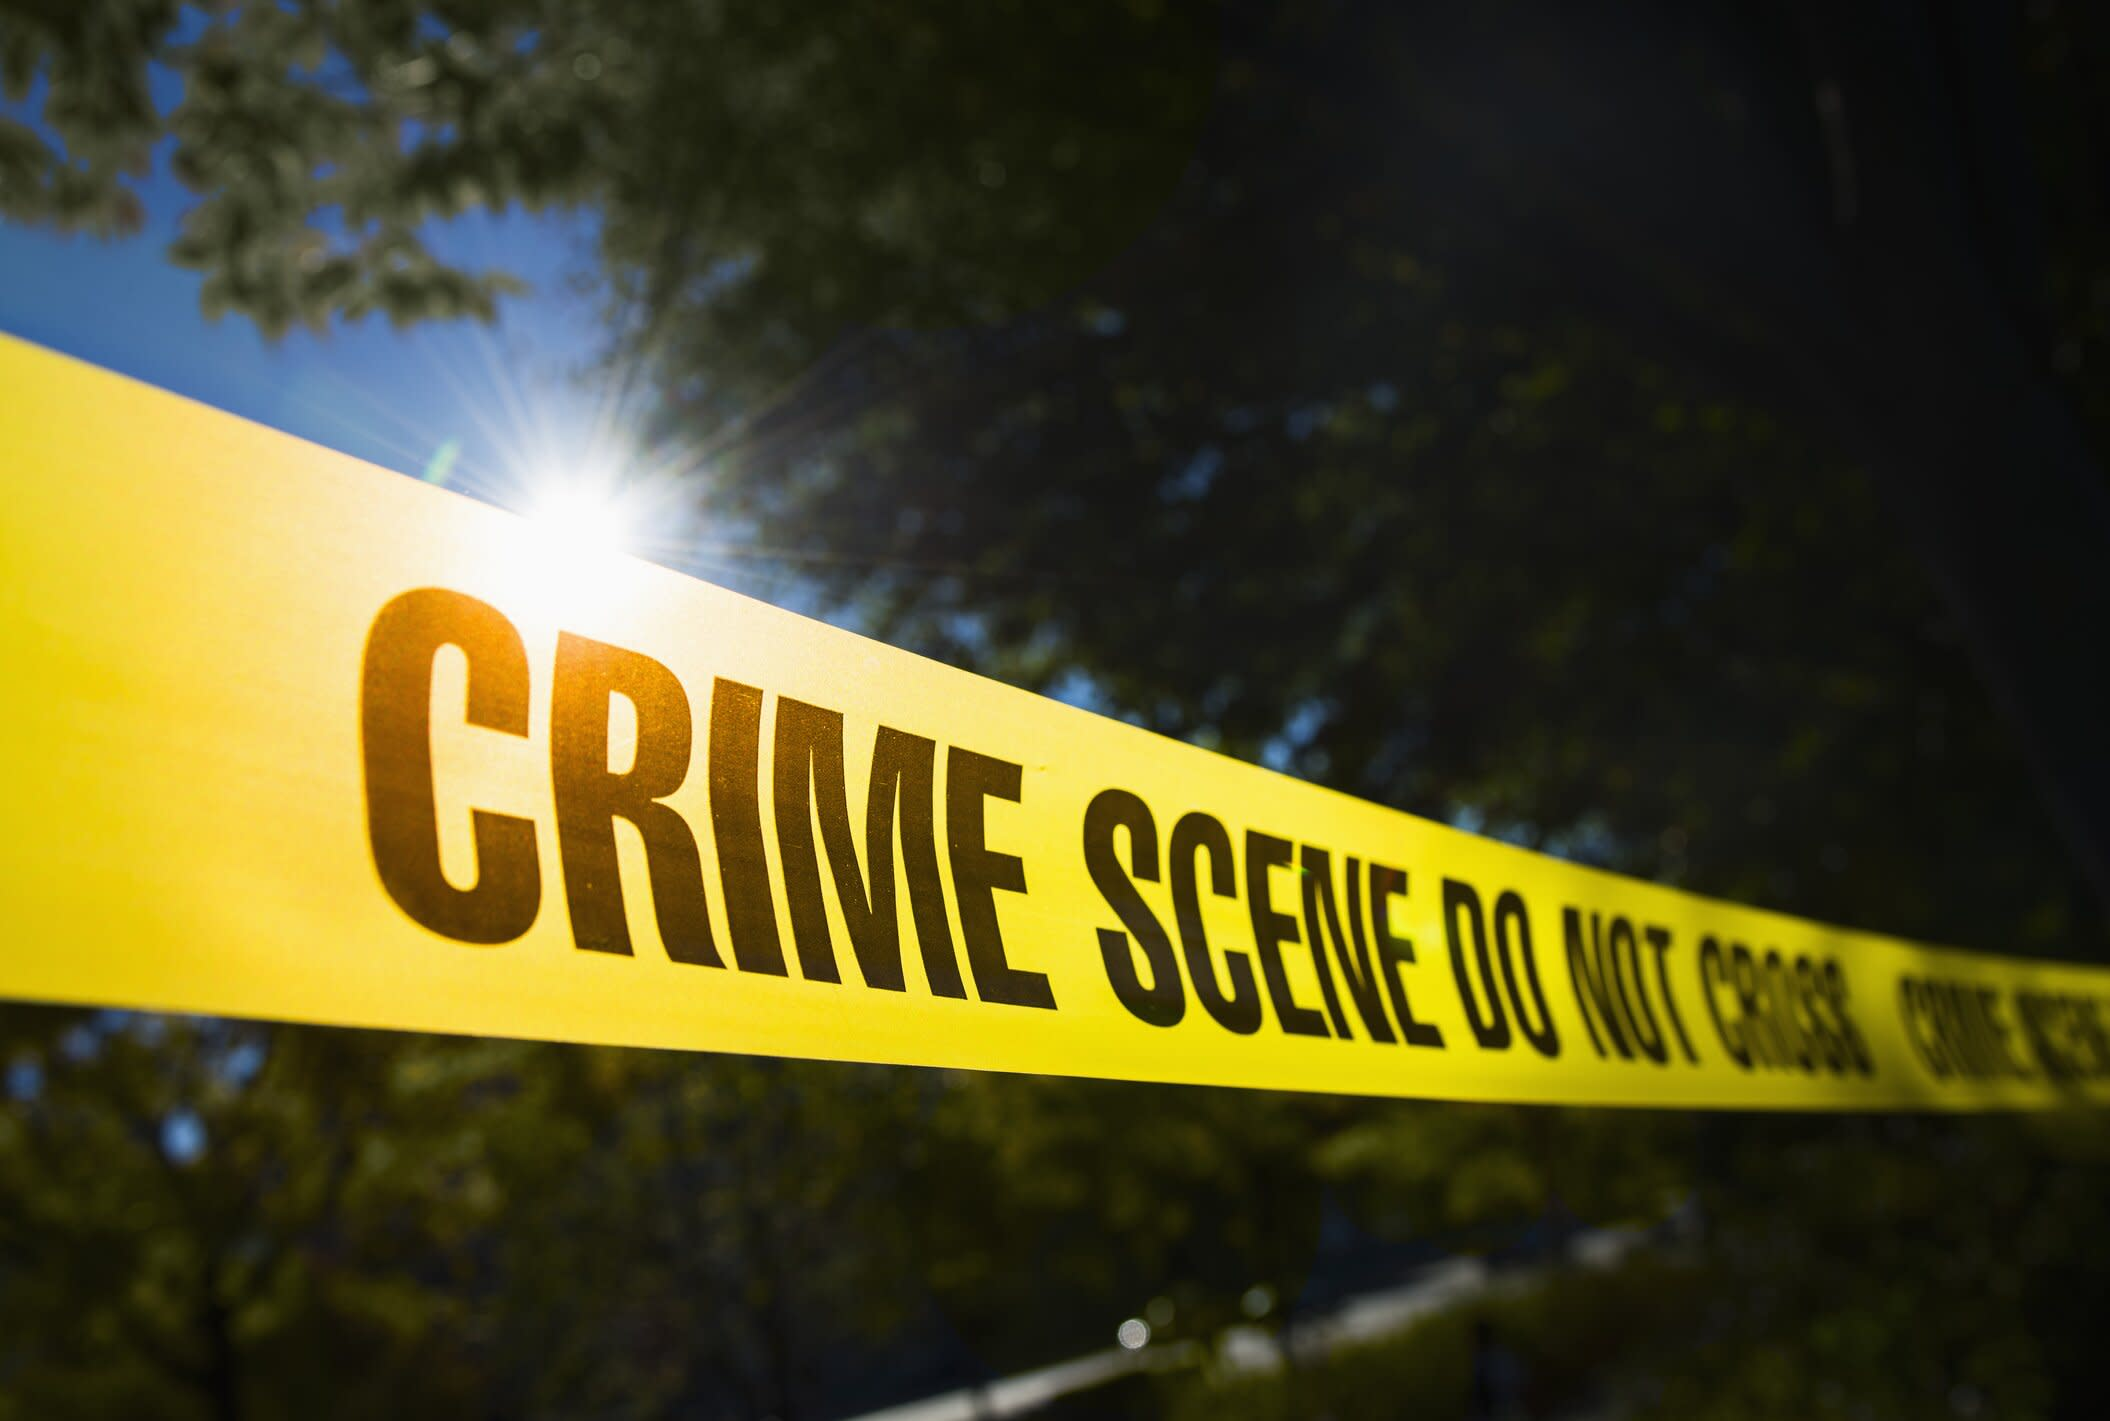 13 Injured in Central Illinois Shooting